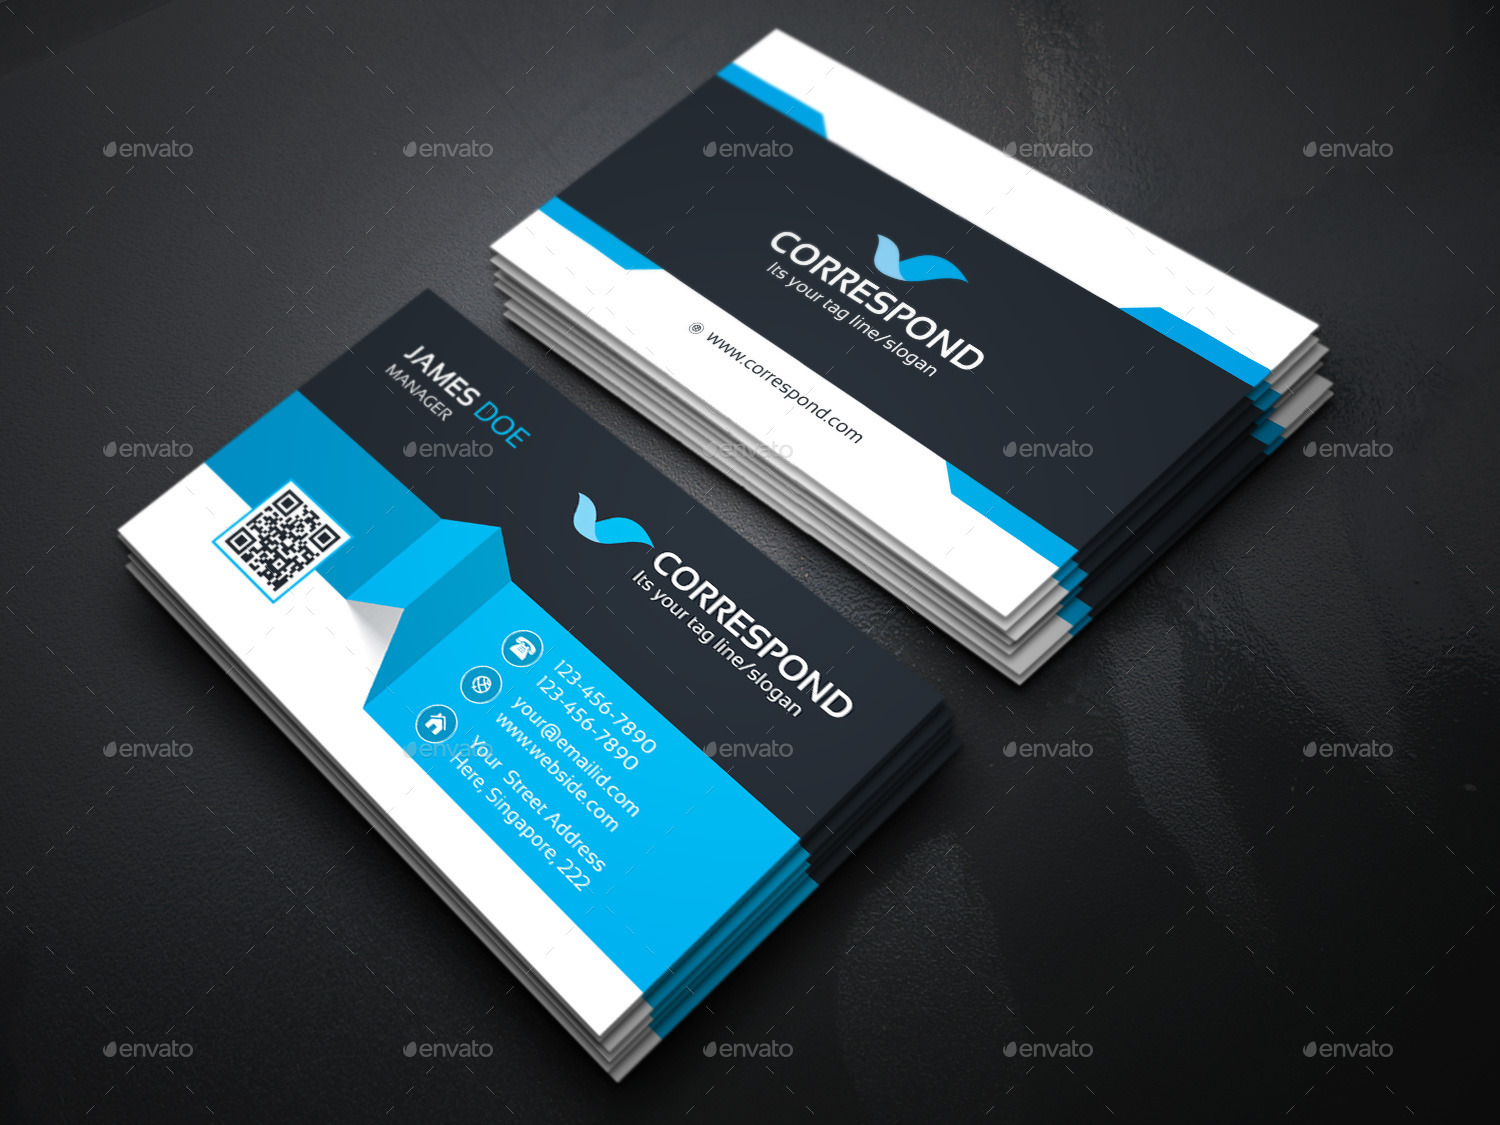 Business Card Bundle 2 in 1_3 by generousart | GraphicRiver